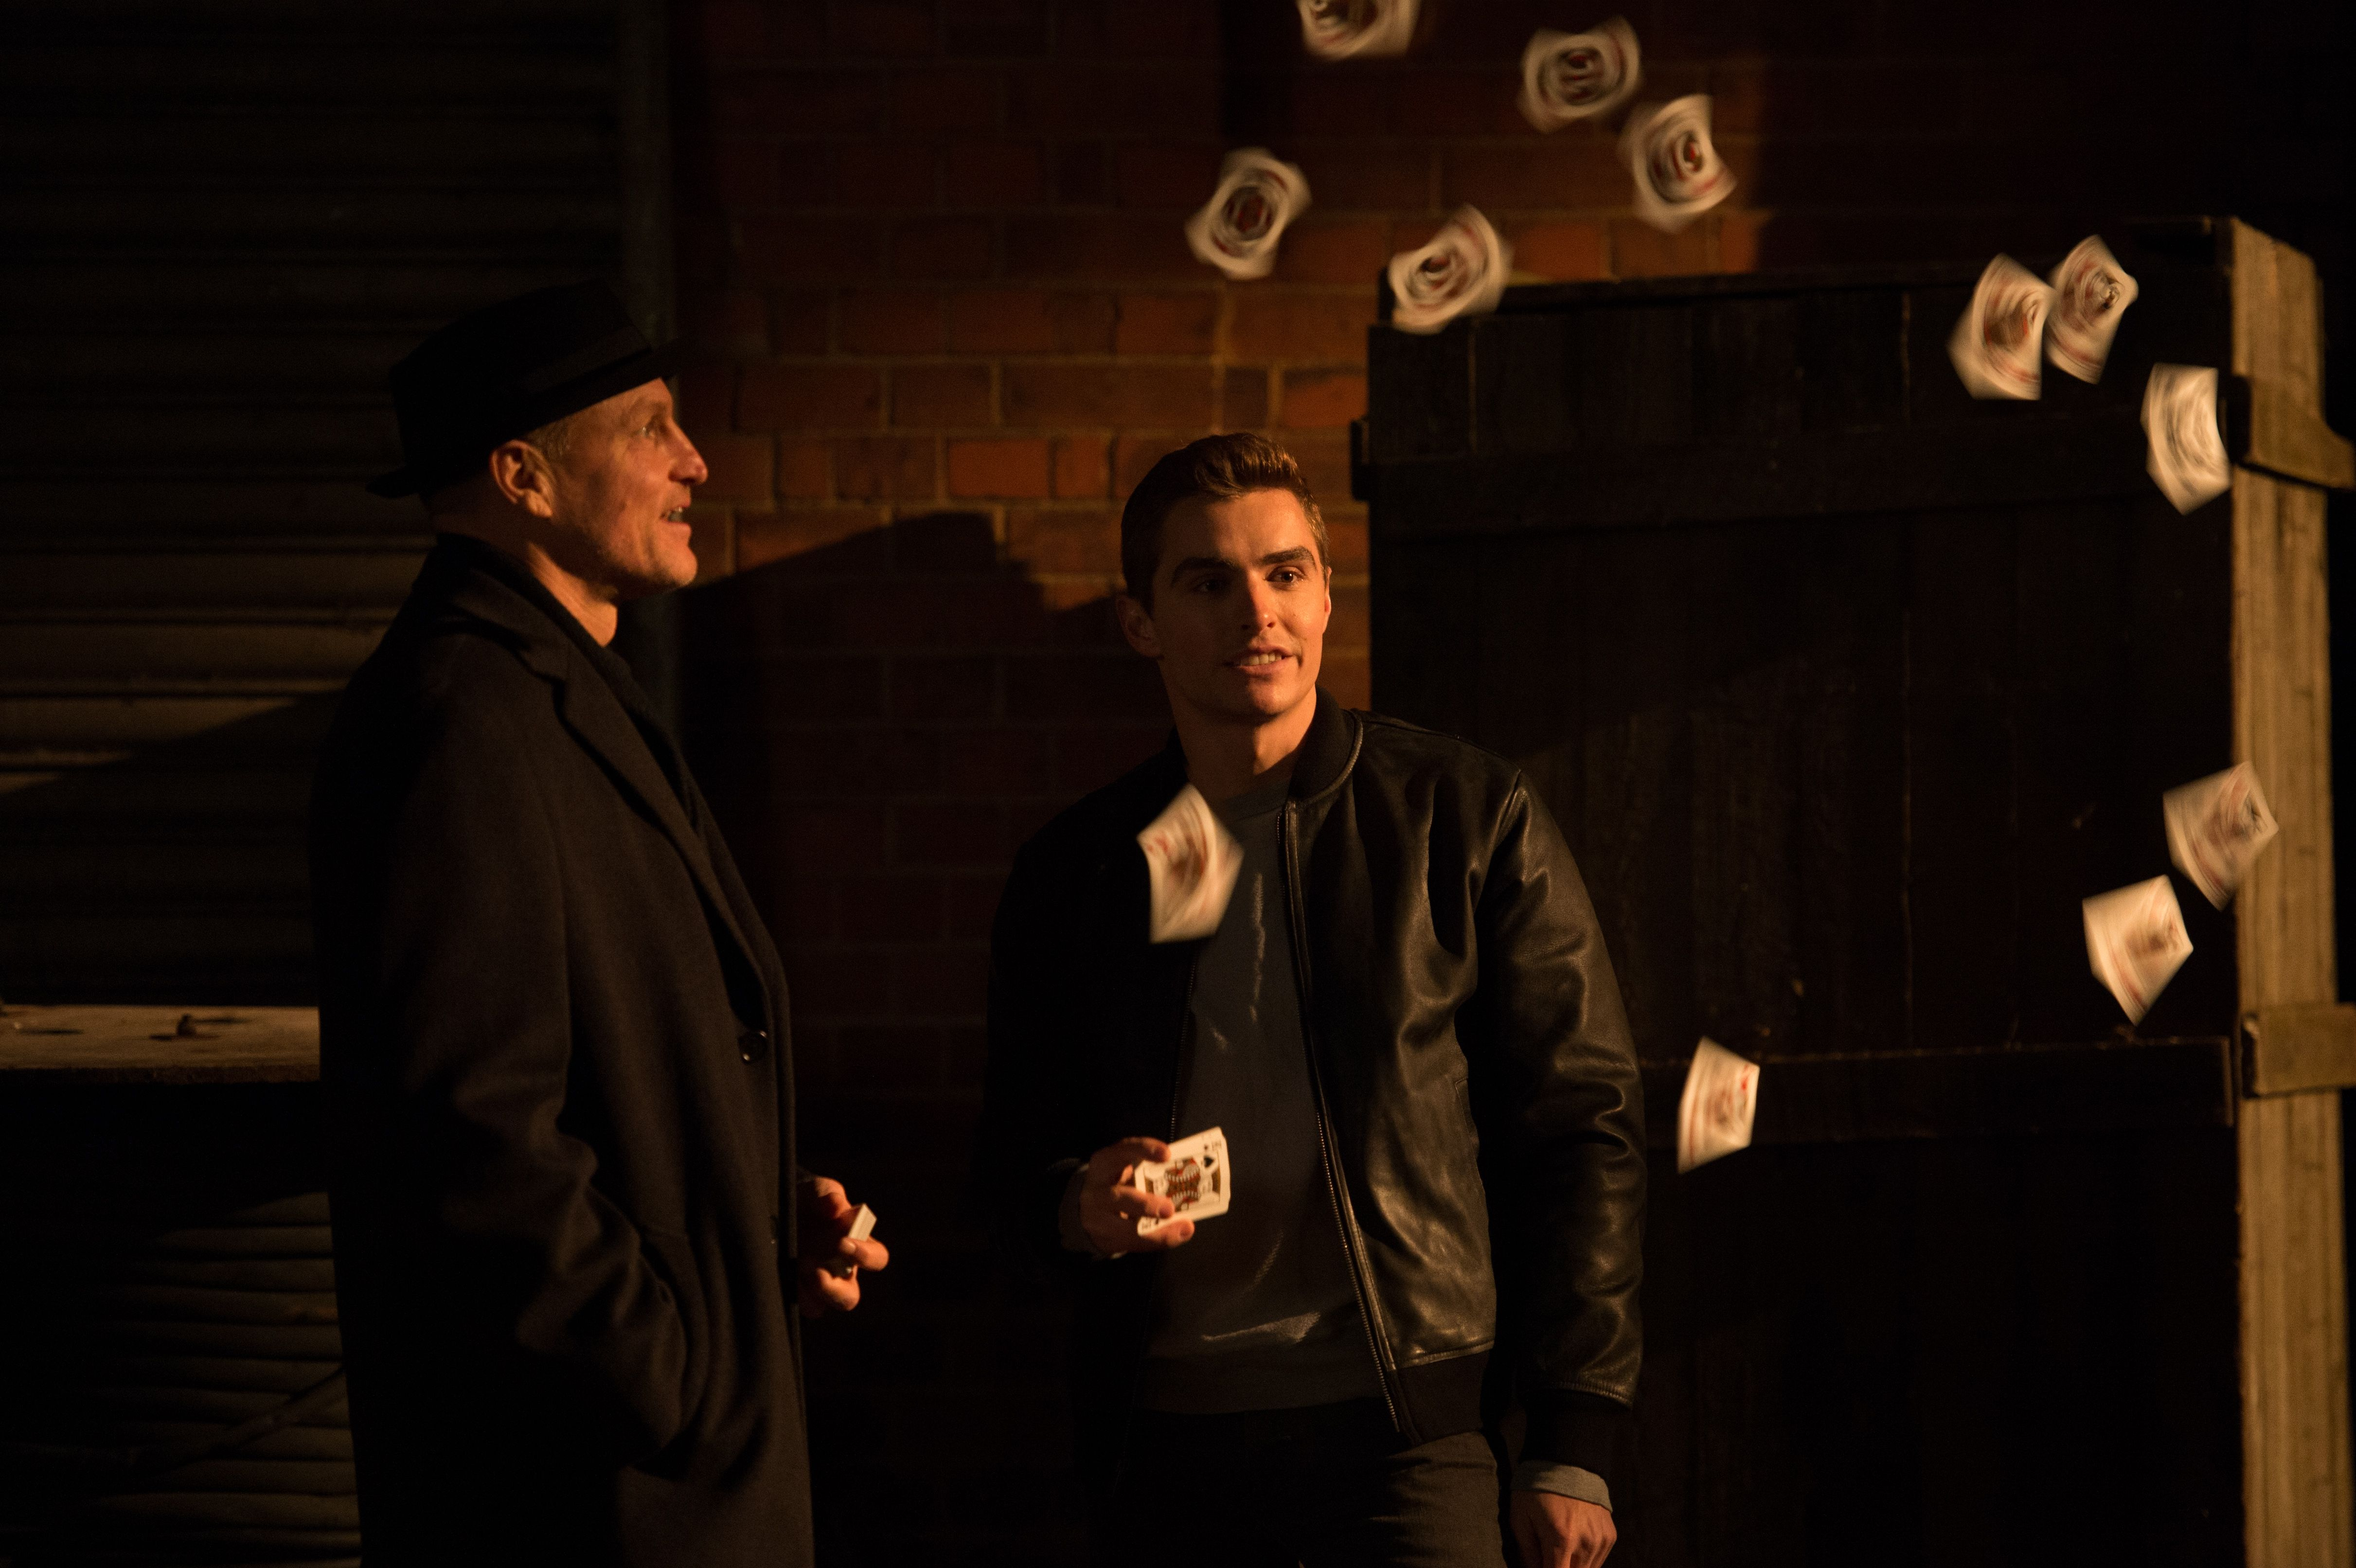 Pin Von Lil Psycho Fangirl Auf Now You See Me 2 Dave Franco Daniel Radcliffe Freiwillige